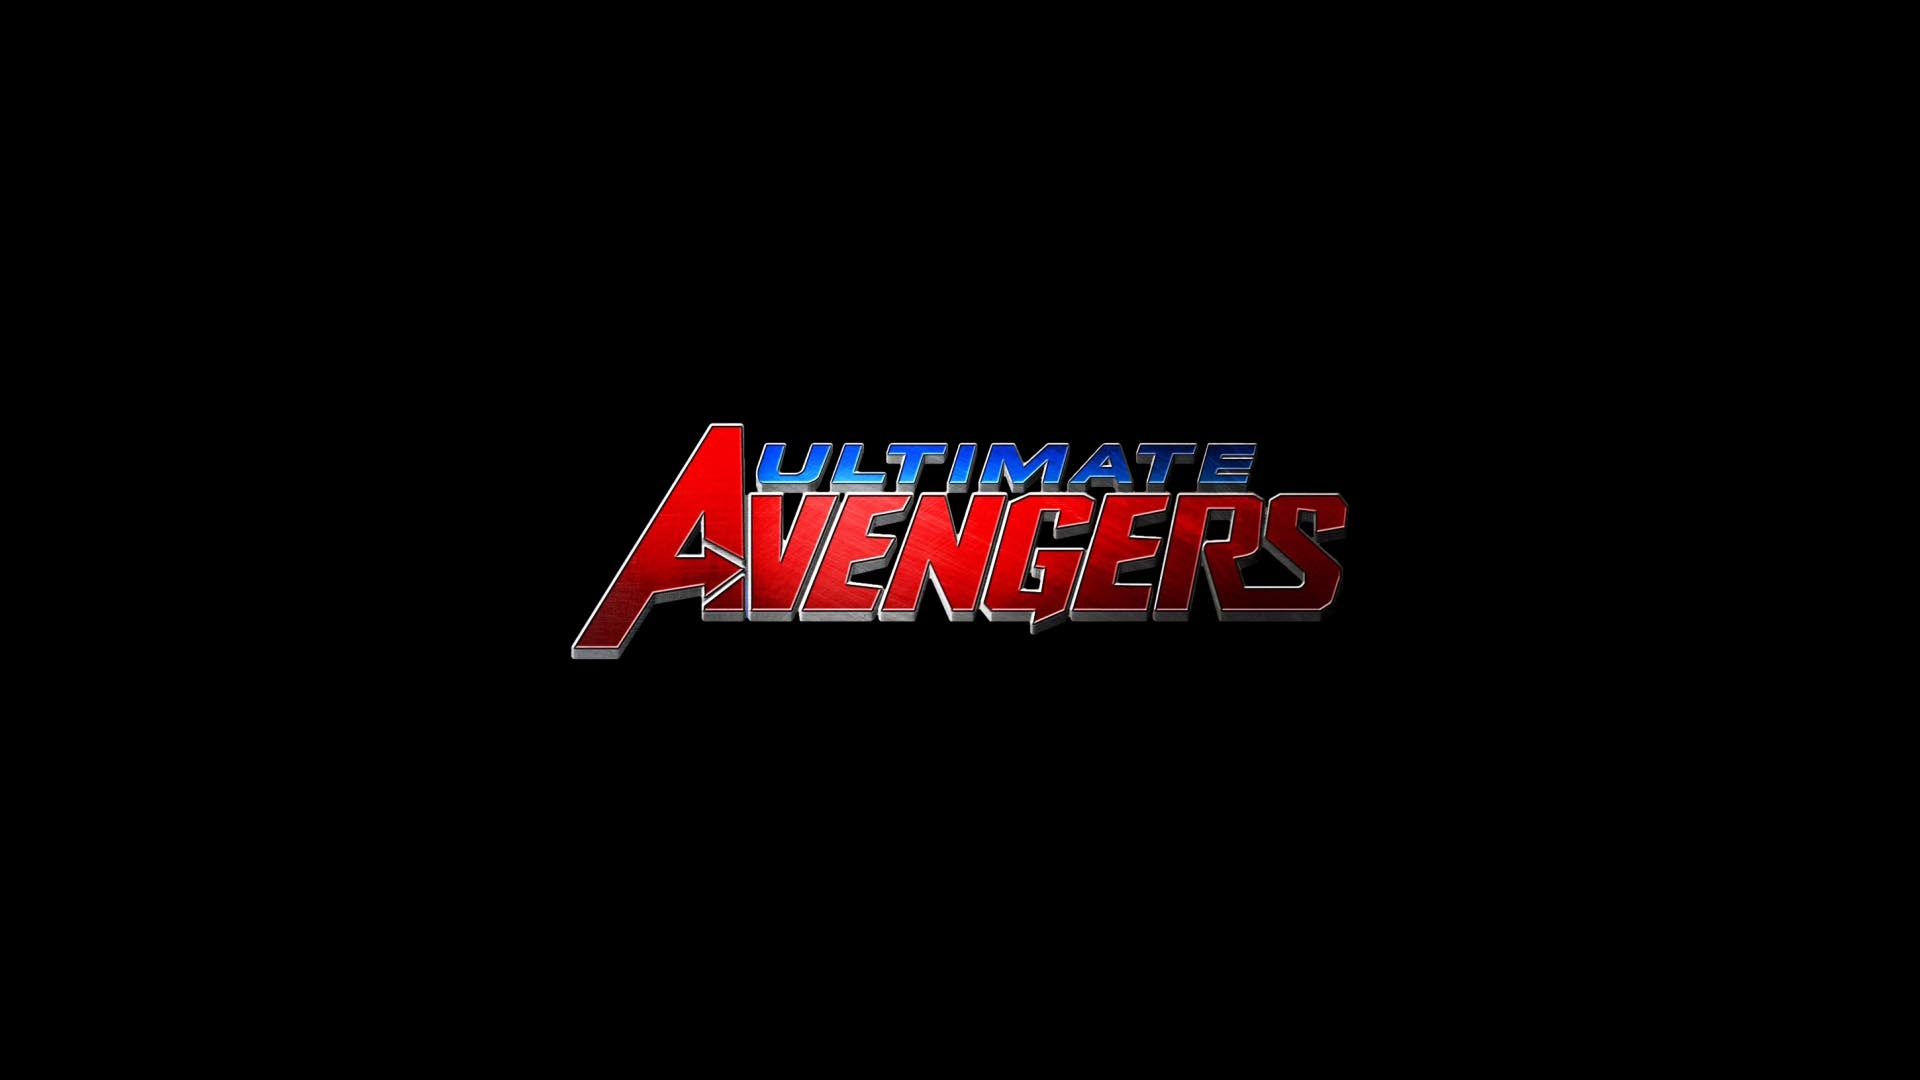 ultimate avengers fonds d'écran hd arrière plans wallpaper